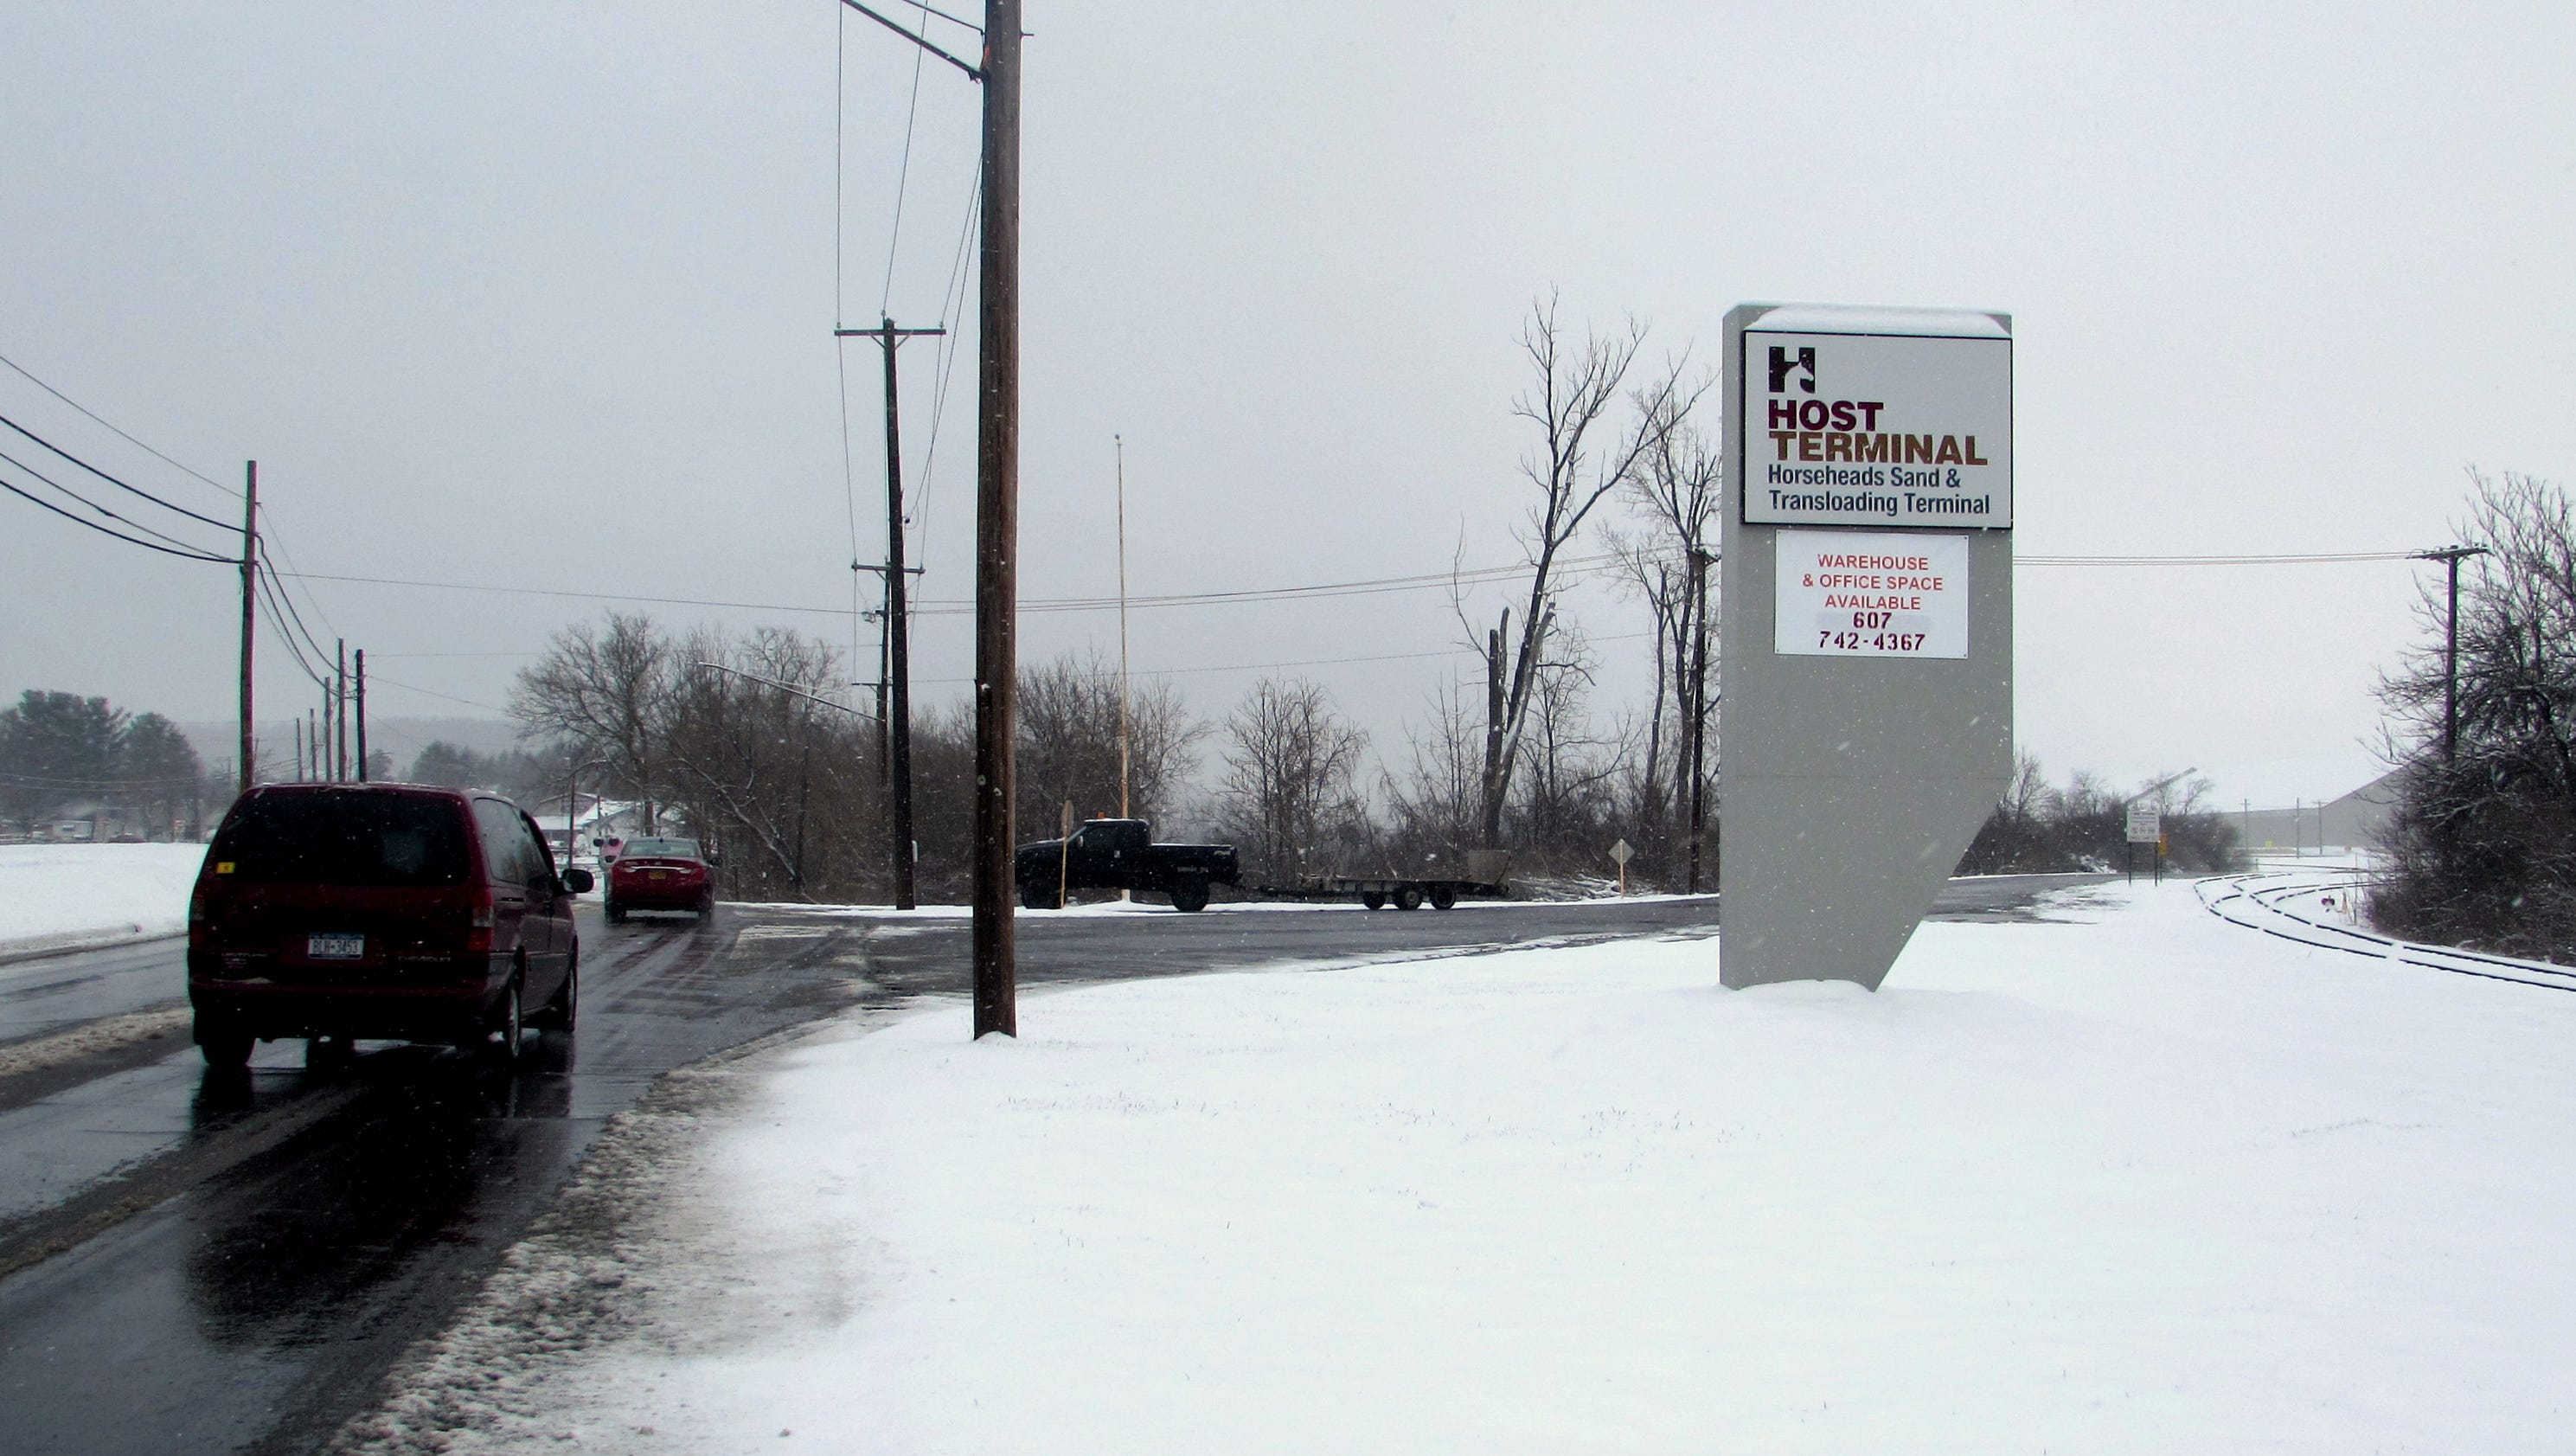 A $25M SURPRISE for Horseheads road project